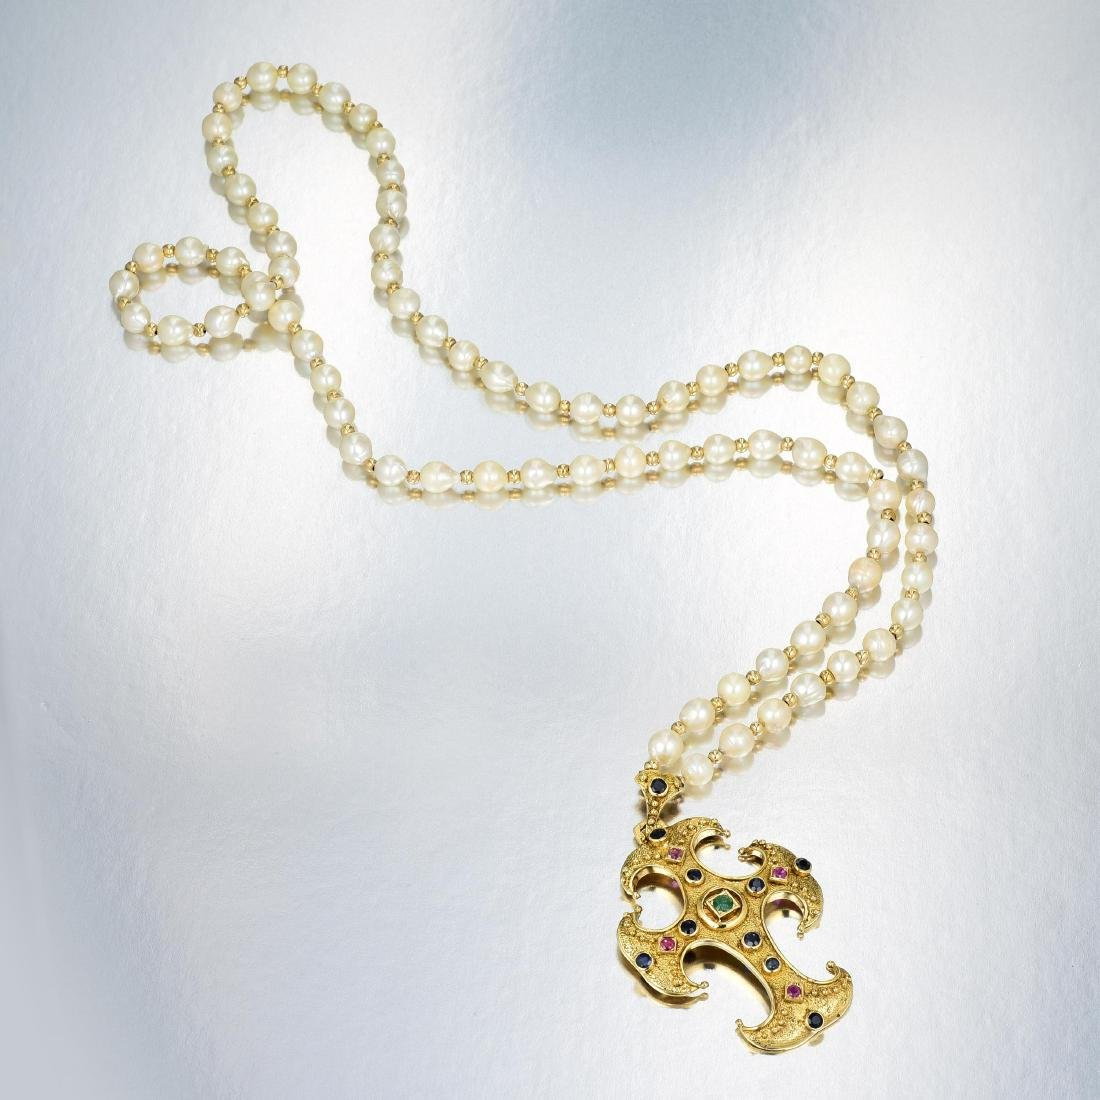 18K Gold, Cultured Pearl and Gemstone Necklace - 3